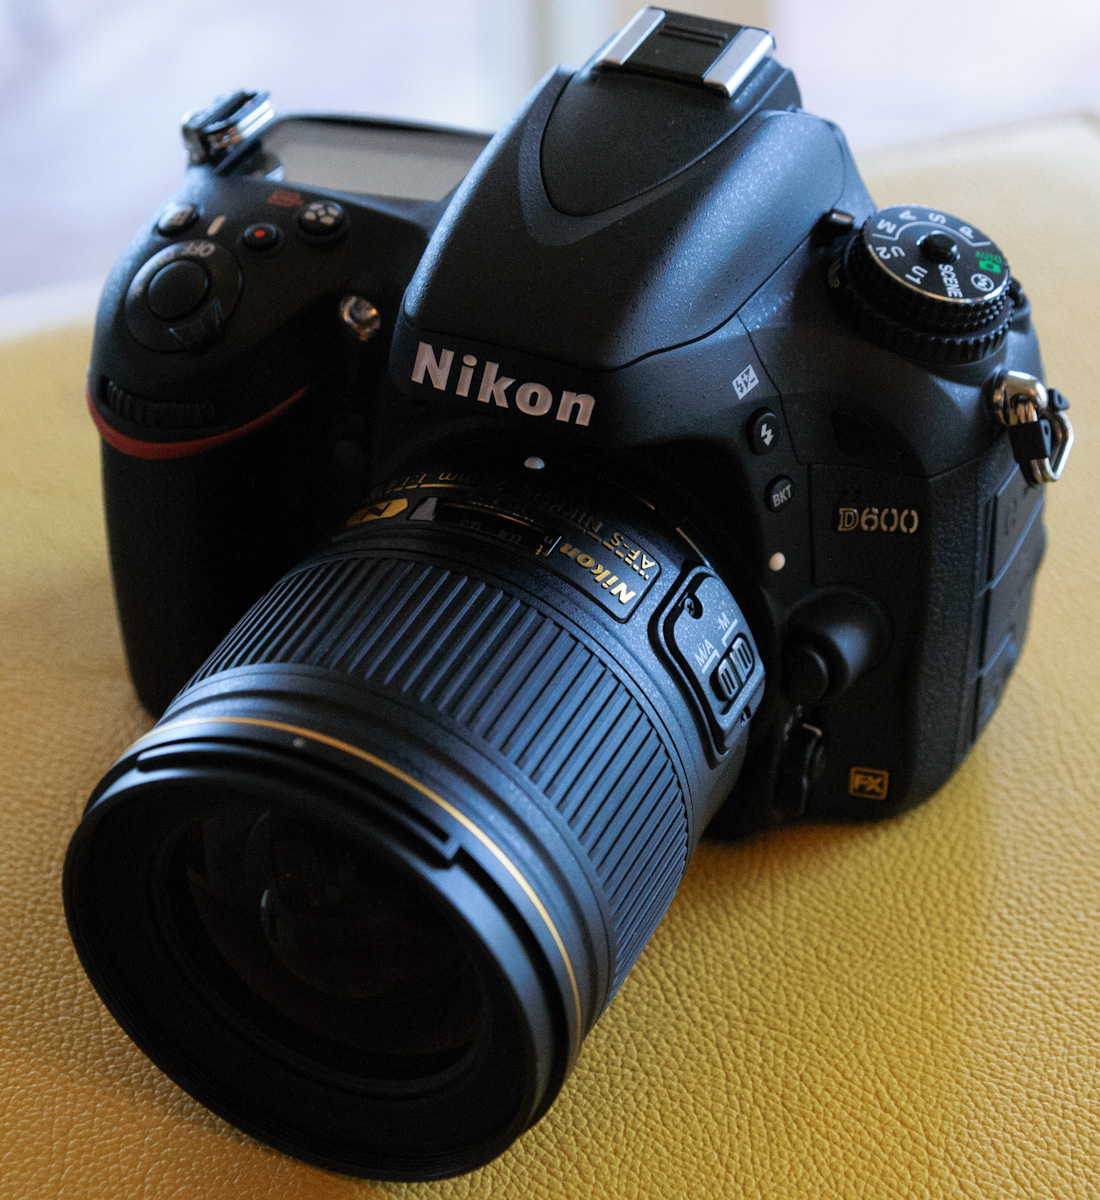 Nikon D600 with AF-S Nikkor 28mm f/1.8G